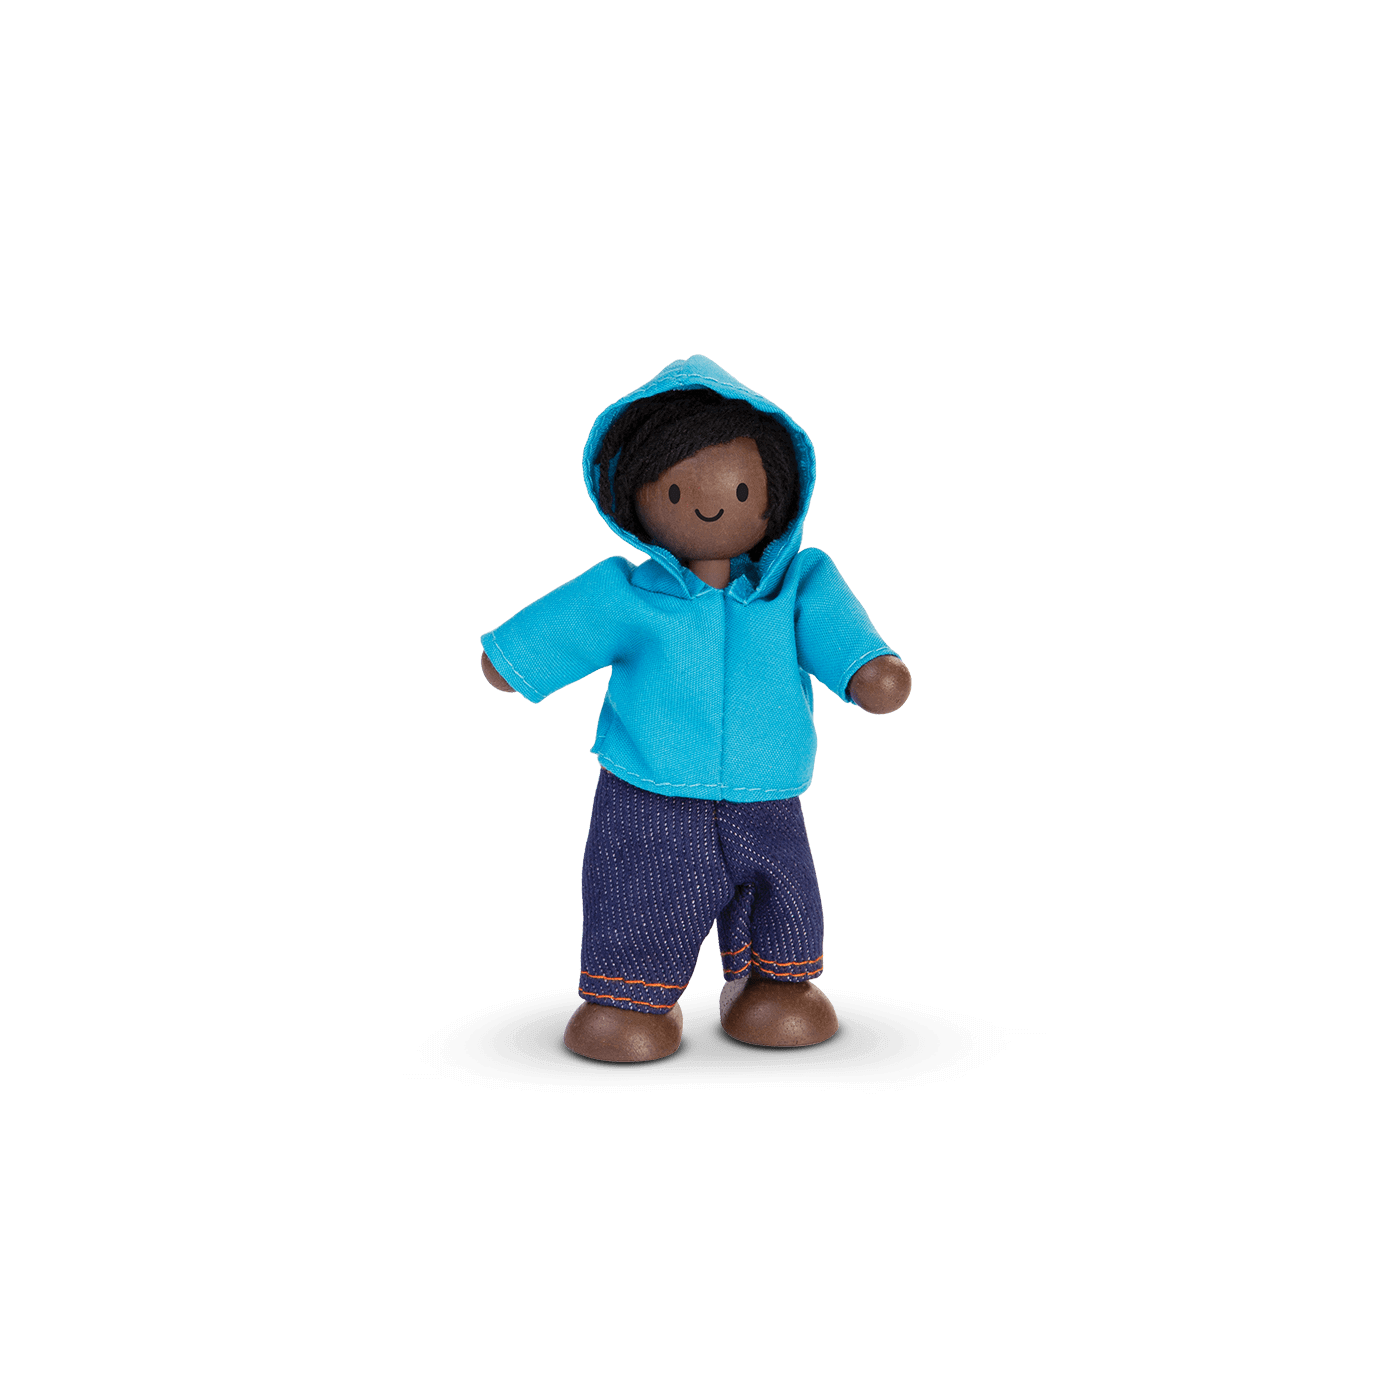 1384_PlanToys_AFRICAN_AMERICAN_BOY_Pretend_Play_Imagination_Social_Language_and_Communications_Coordination_Creative_Emotion_3yrs_Wooden_toys_Education_toys_Safety_Toys_Non-toxic_0.png